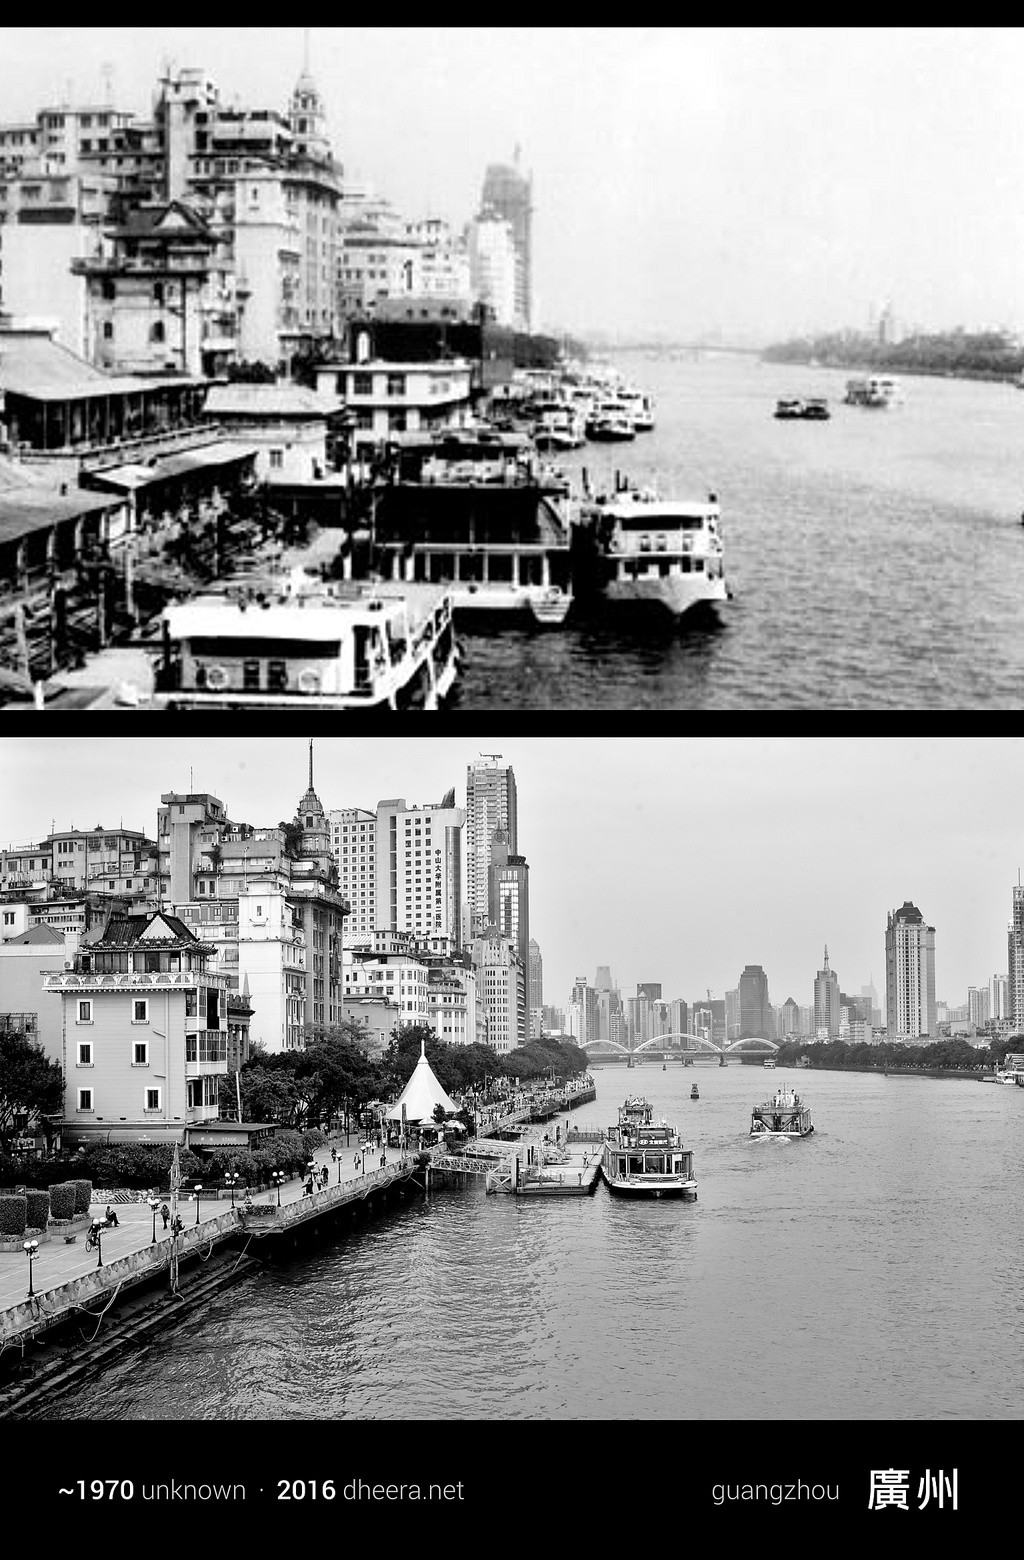 PHOTOS: How China Has Changed in 100 Years – Thatsmags.com